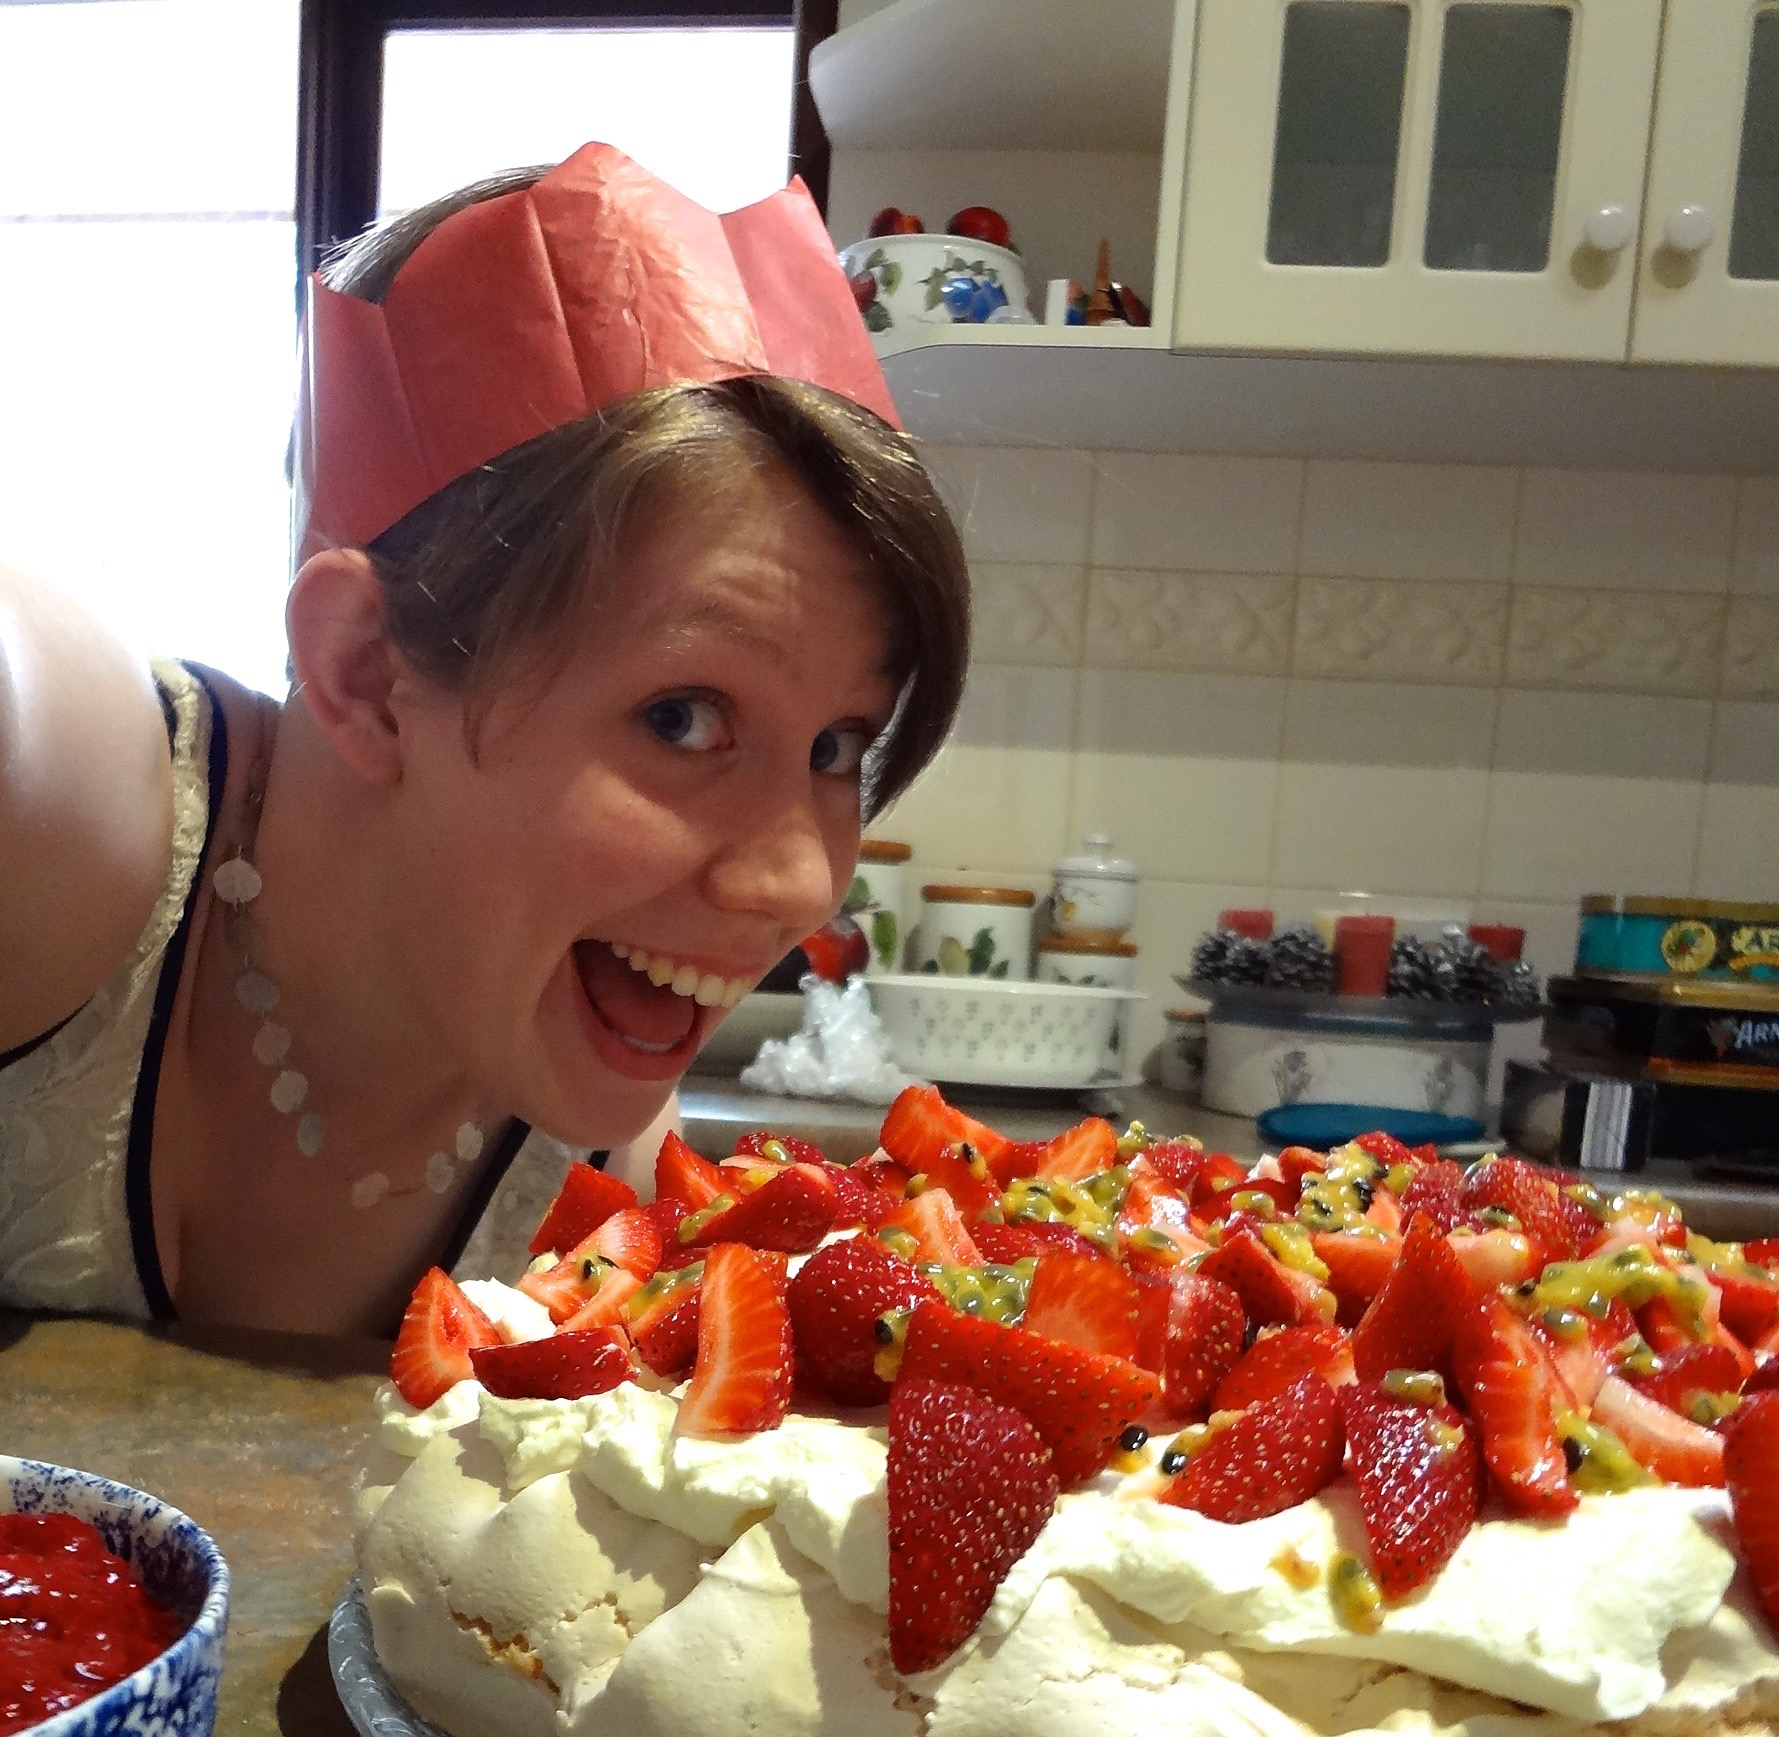 This is just a photo of me and a pavlova at Christmas. I'll work on getting some more topical images for future blog posts